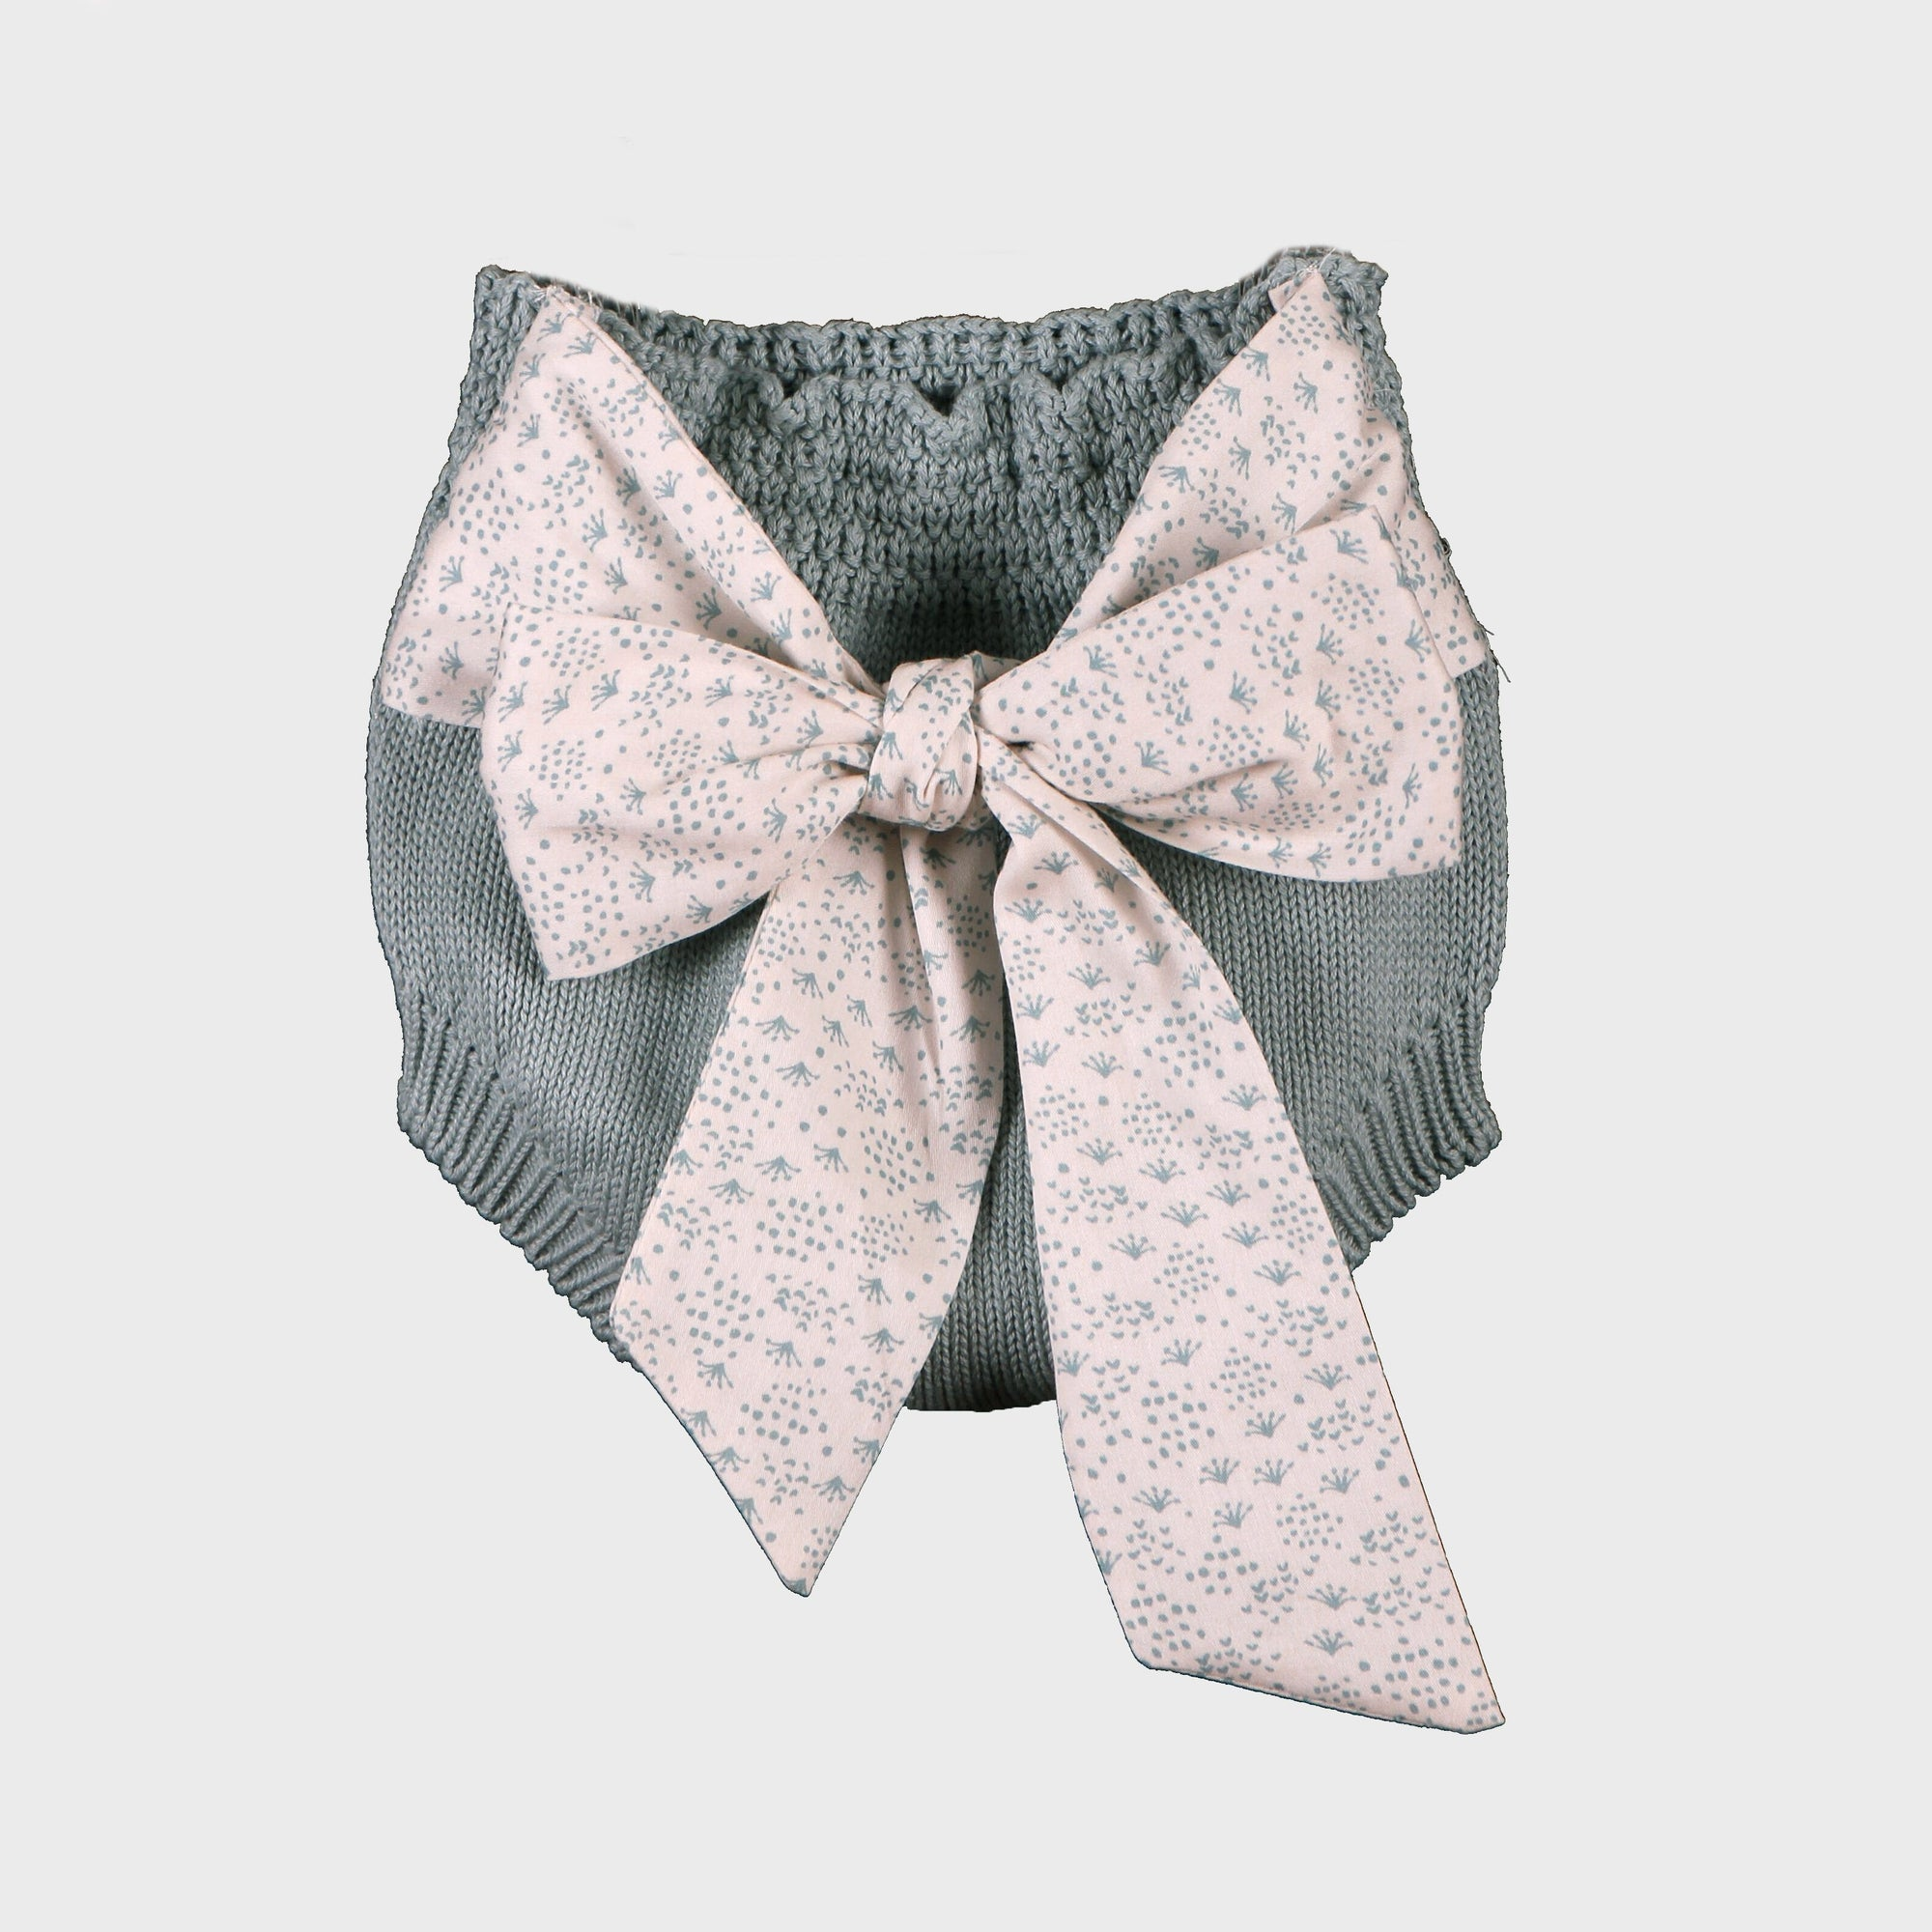 Wedoble Green Knit Bloomers with Floral Bow | Millie and John